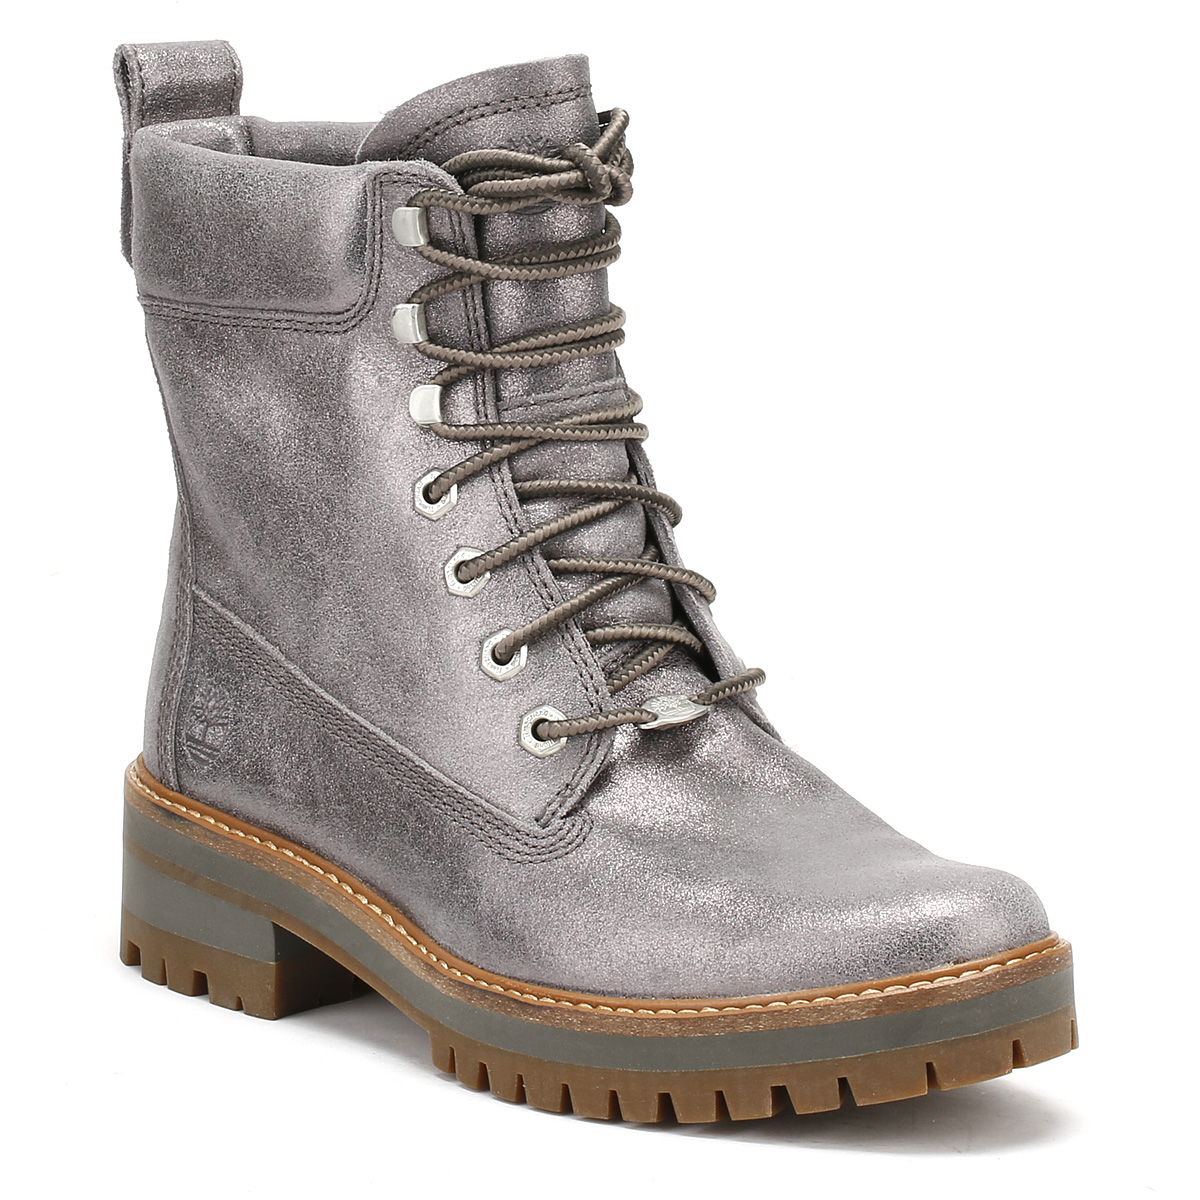 362f04996e849 Details about Timberland Womens Silver Courmayeur Valley Boots Metallic  Leather Lace Up Shoes